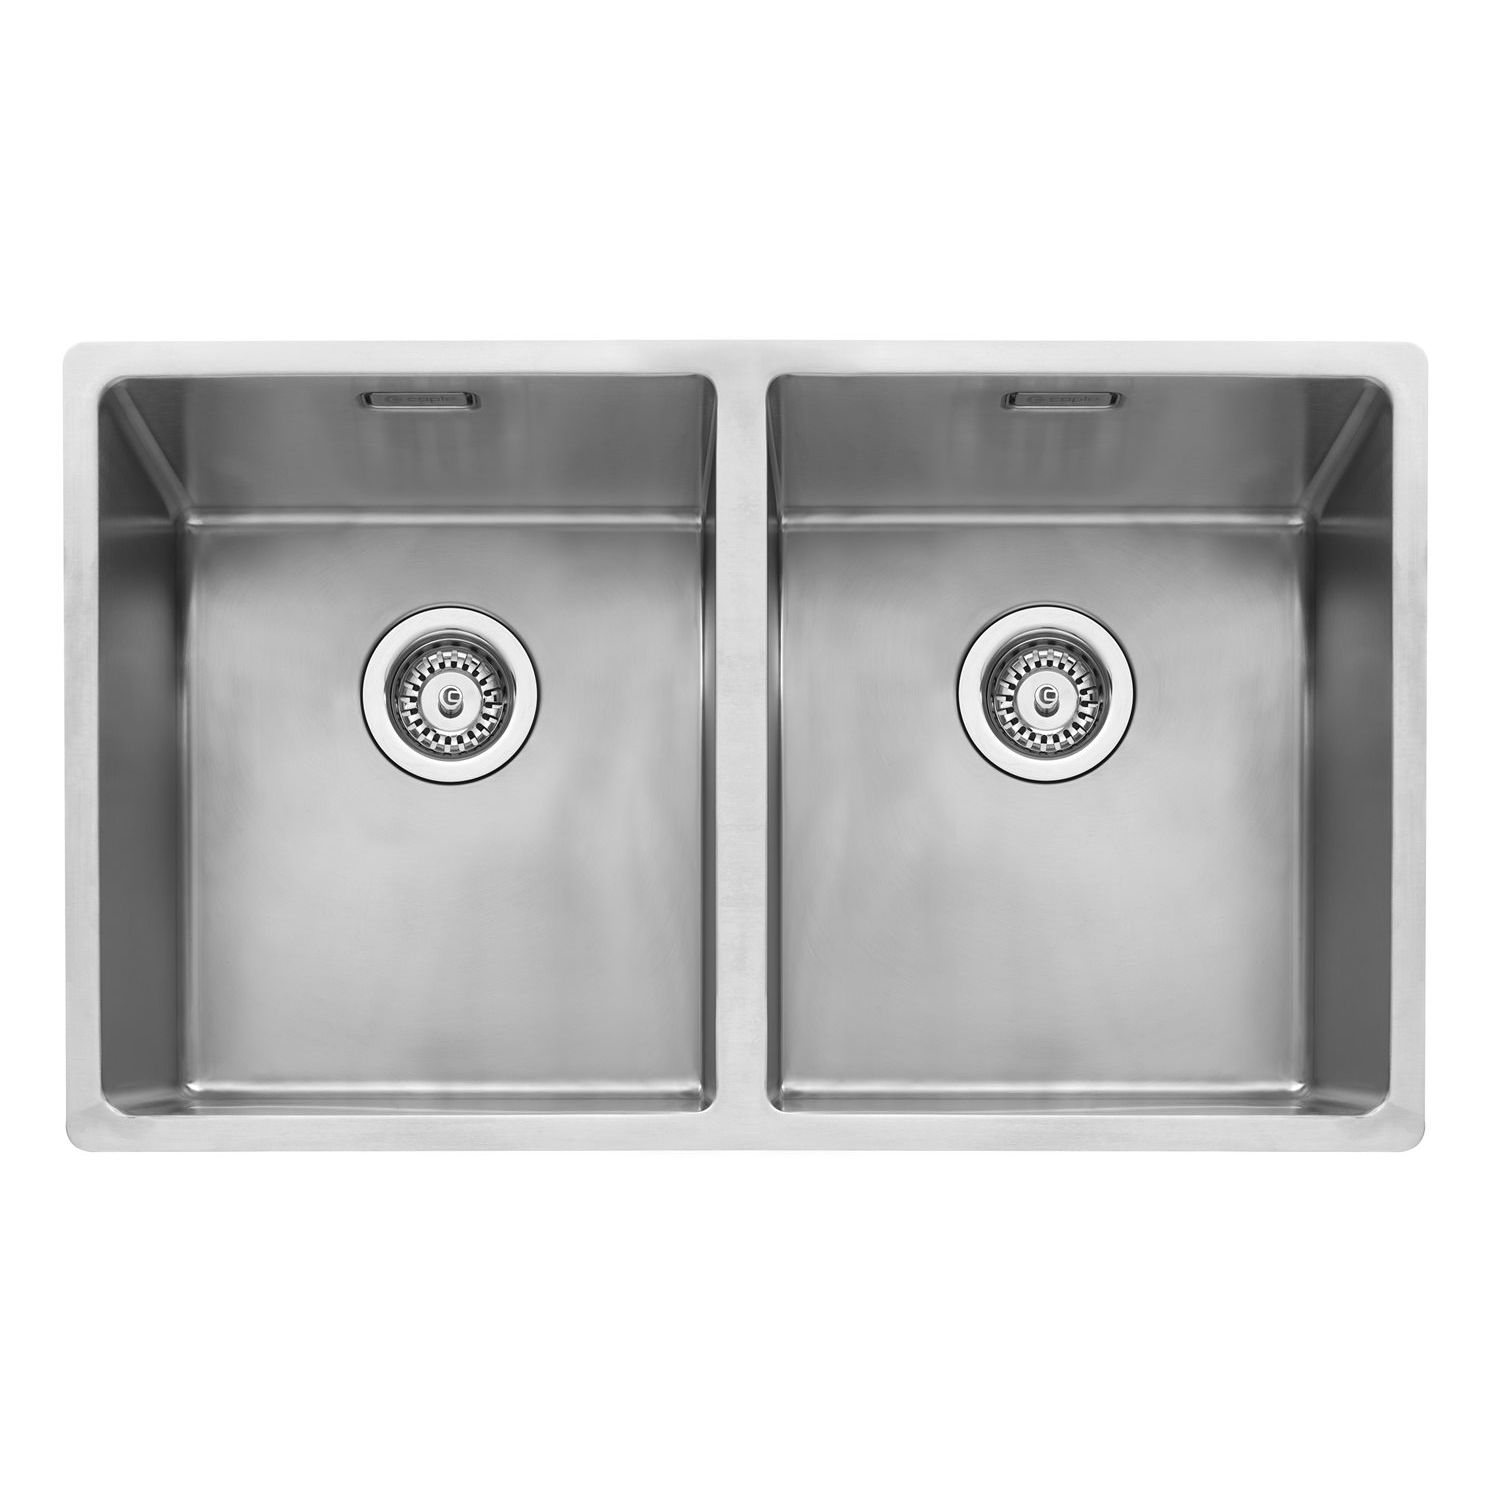 Inset Kitchen Sink - Kitchen Appliances Tips And Review